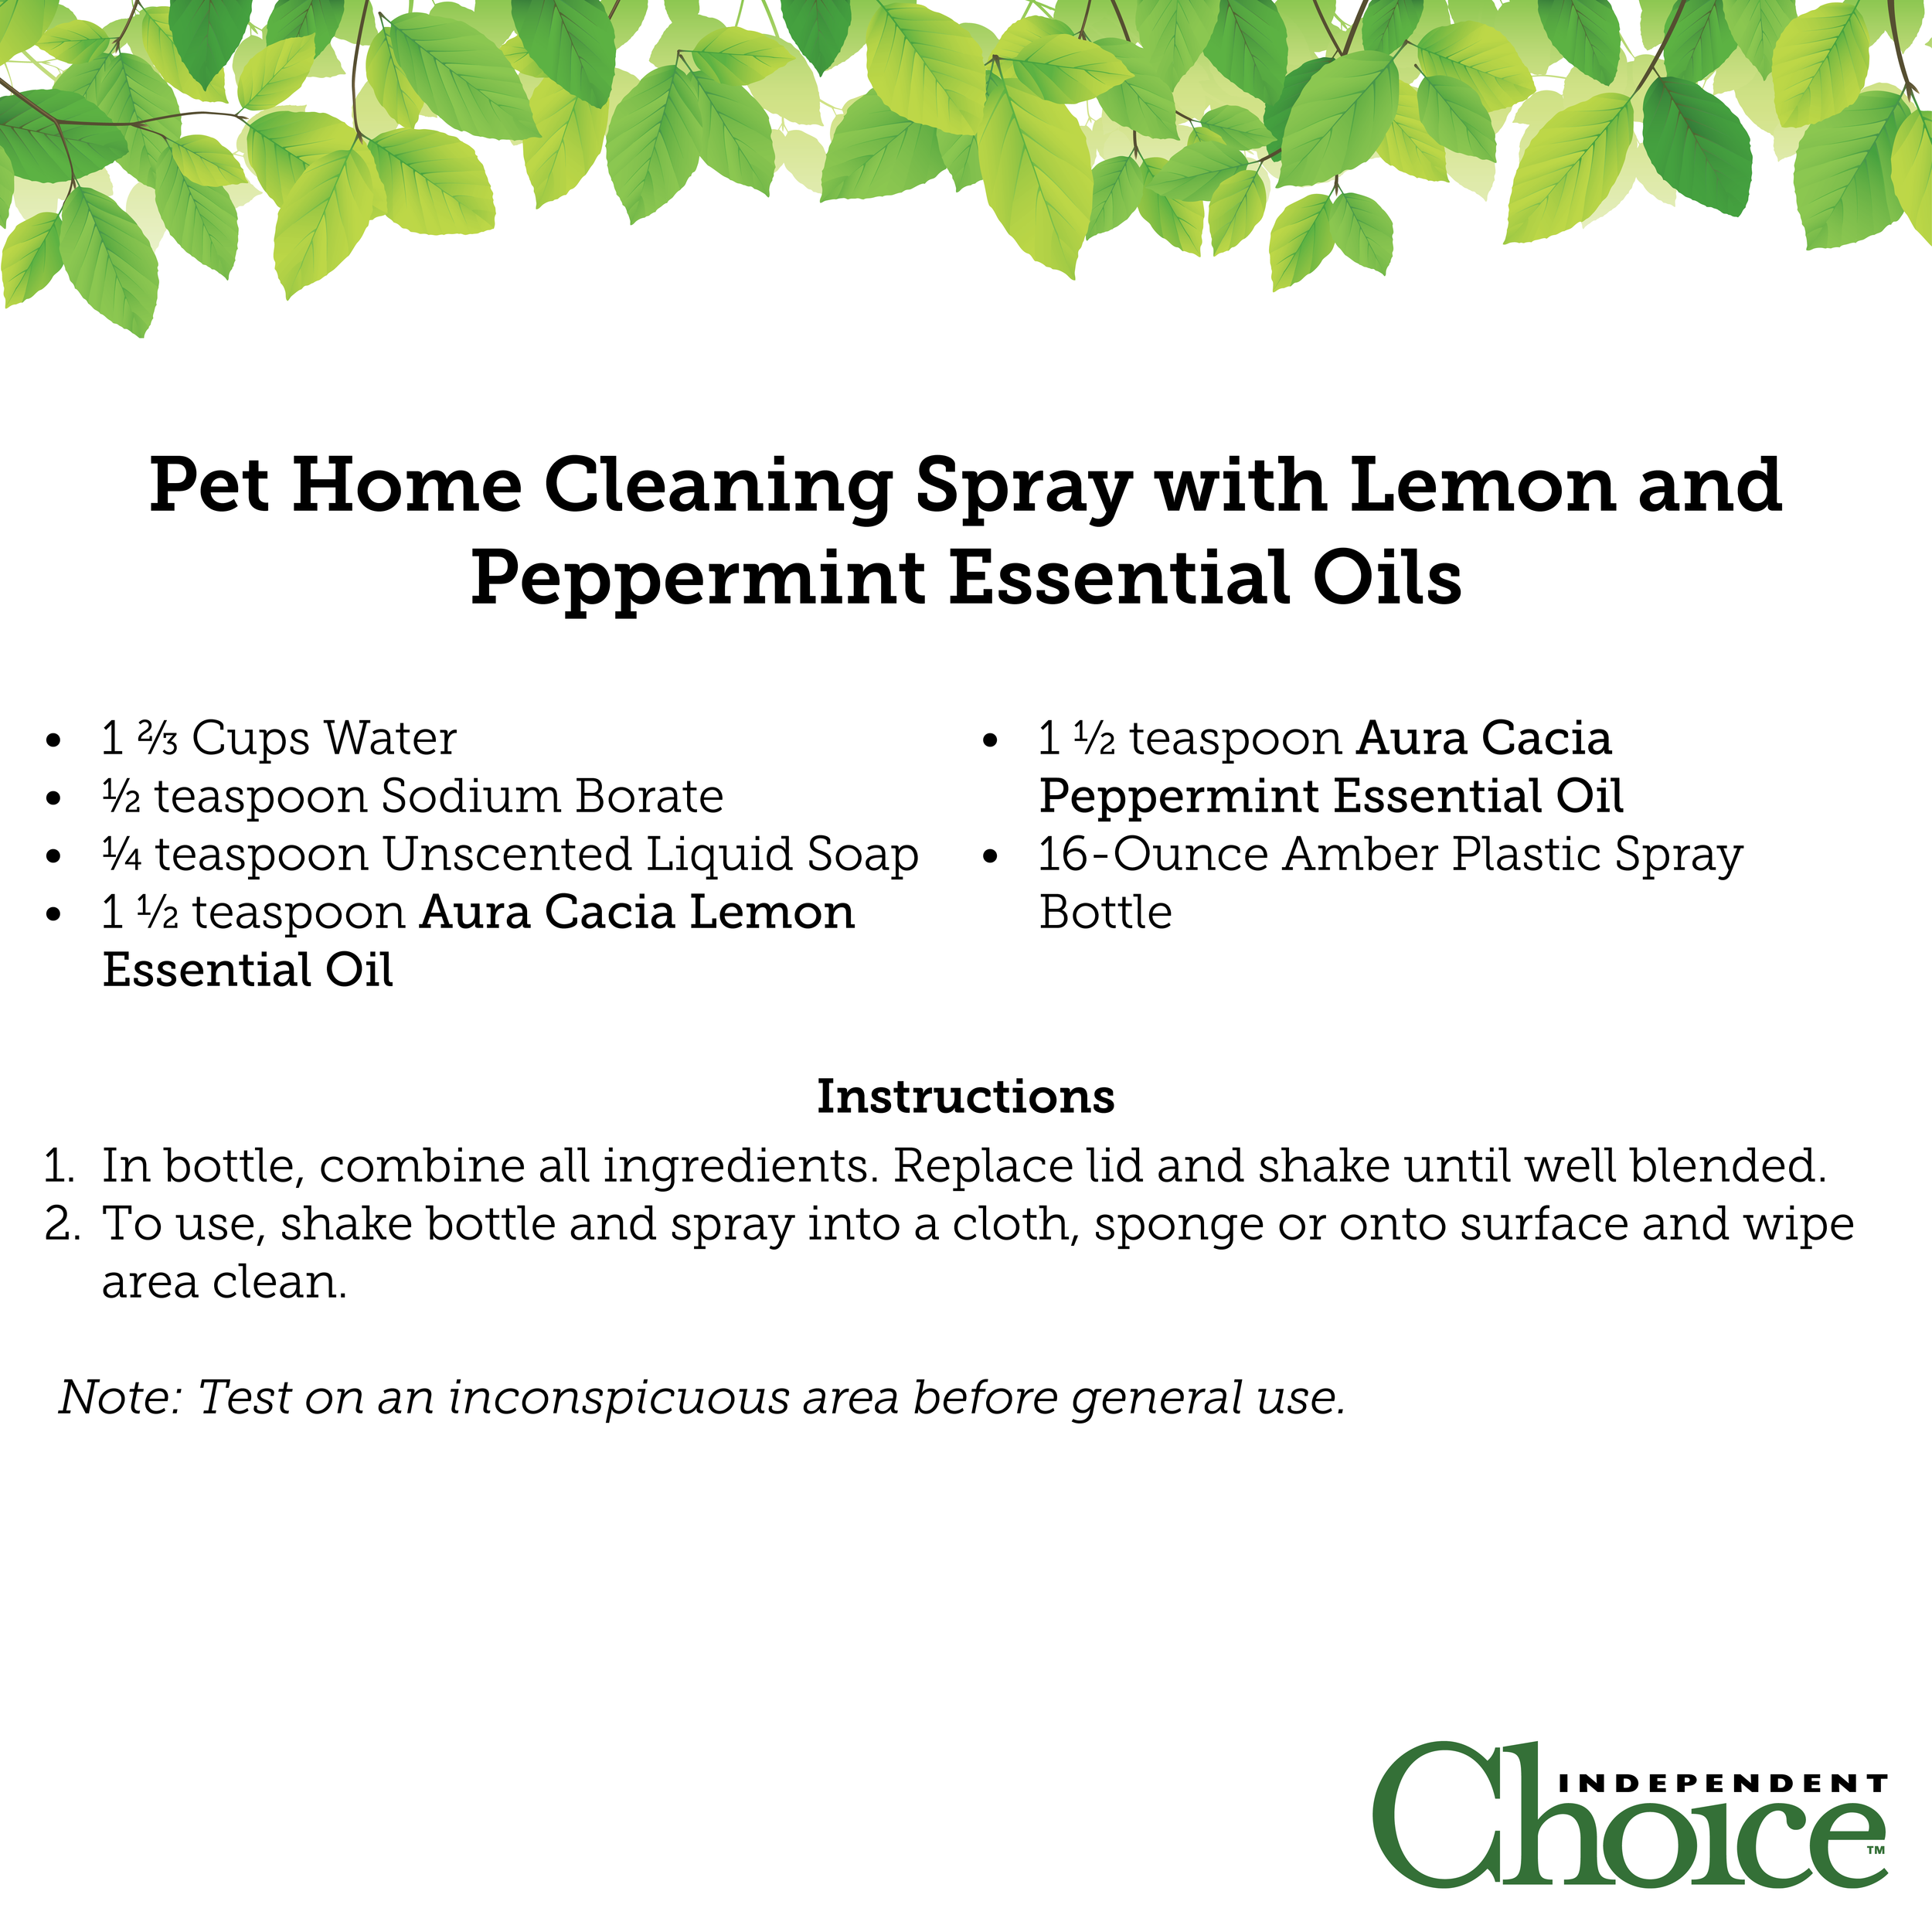 Pet Home Cleaning Spray with Lemon and Peppermint Essential Oils.png